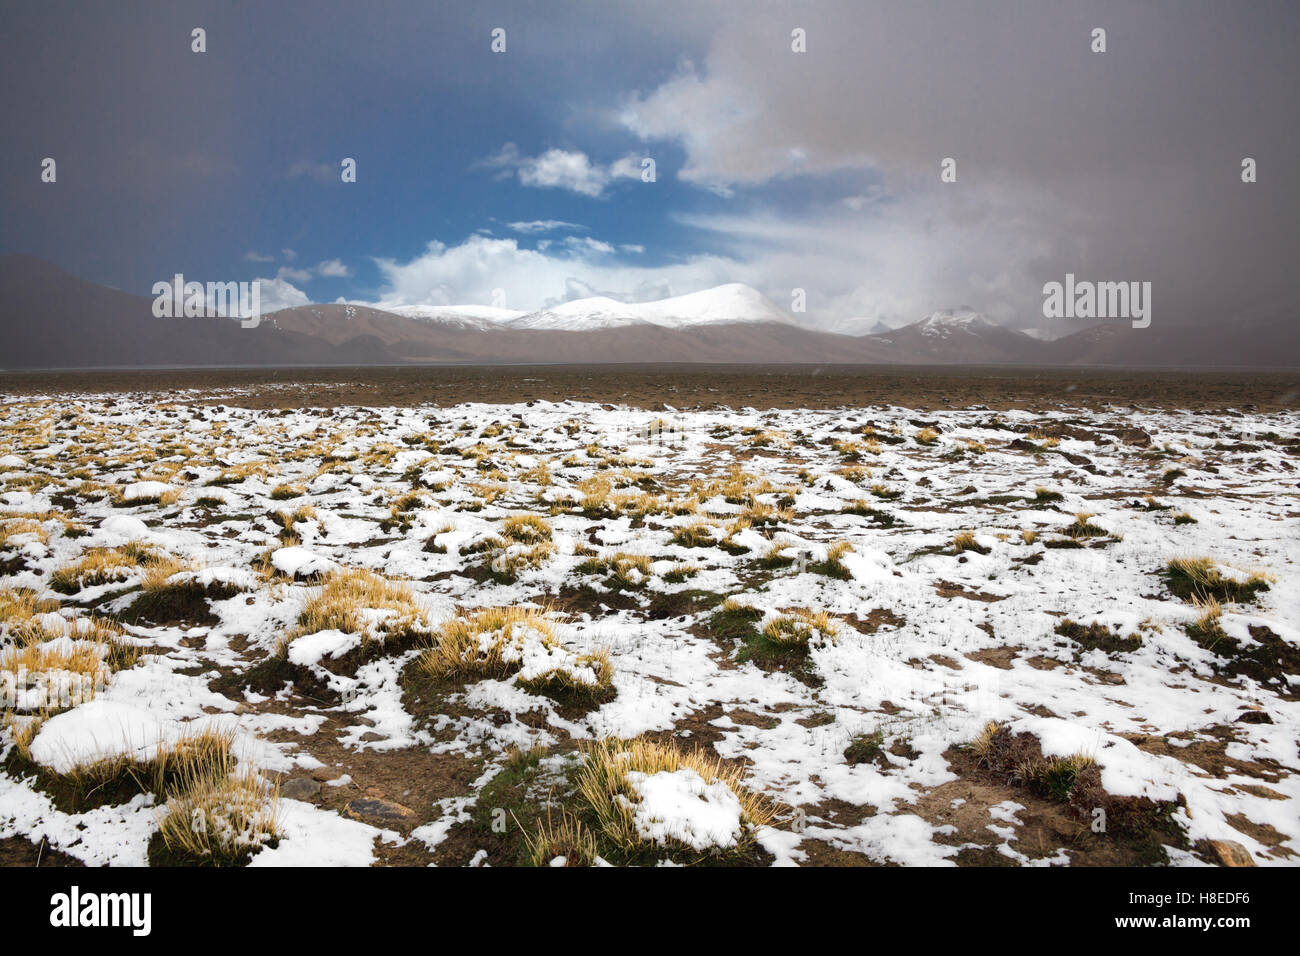 Landscape near Karakul lake - Pamir - T ajikistan - GBAO province -  Roof of the world - Stock Image